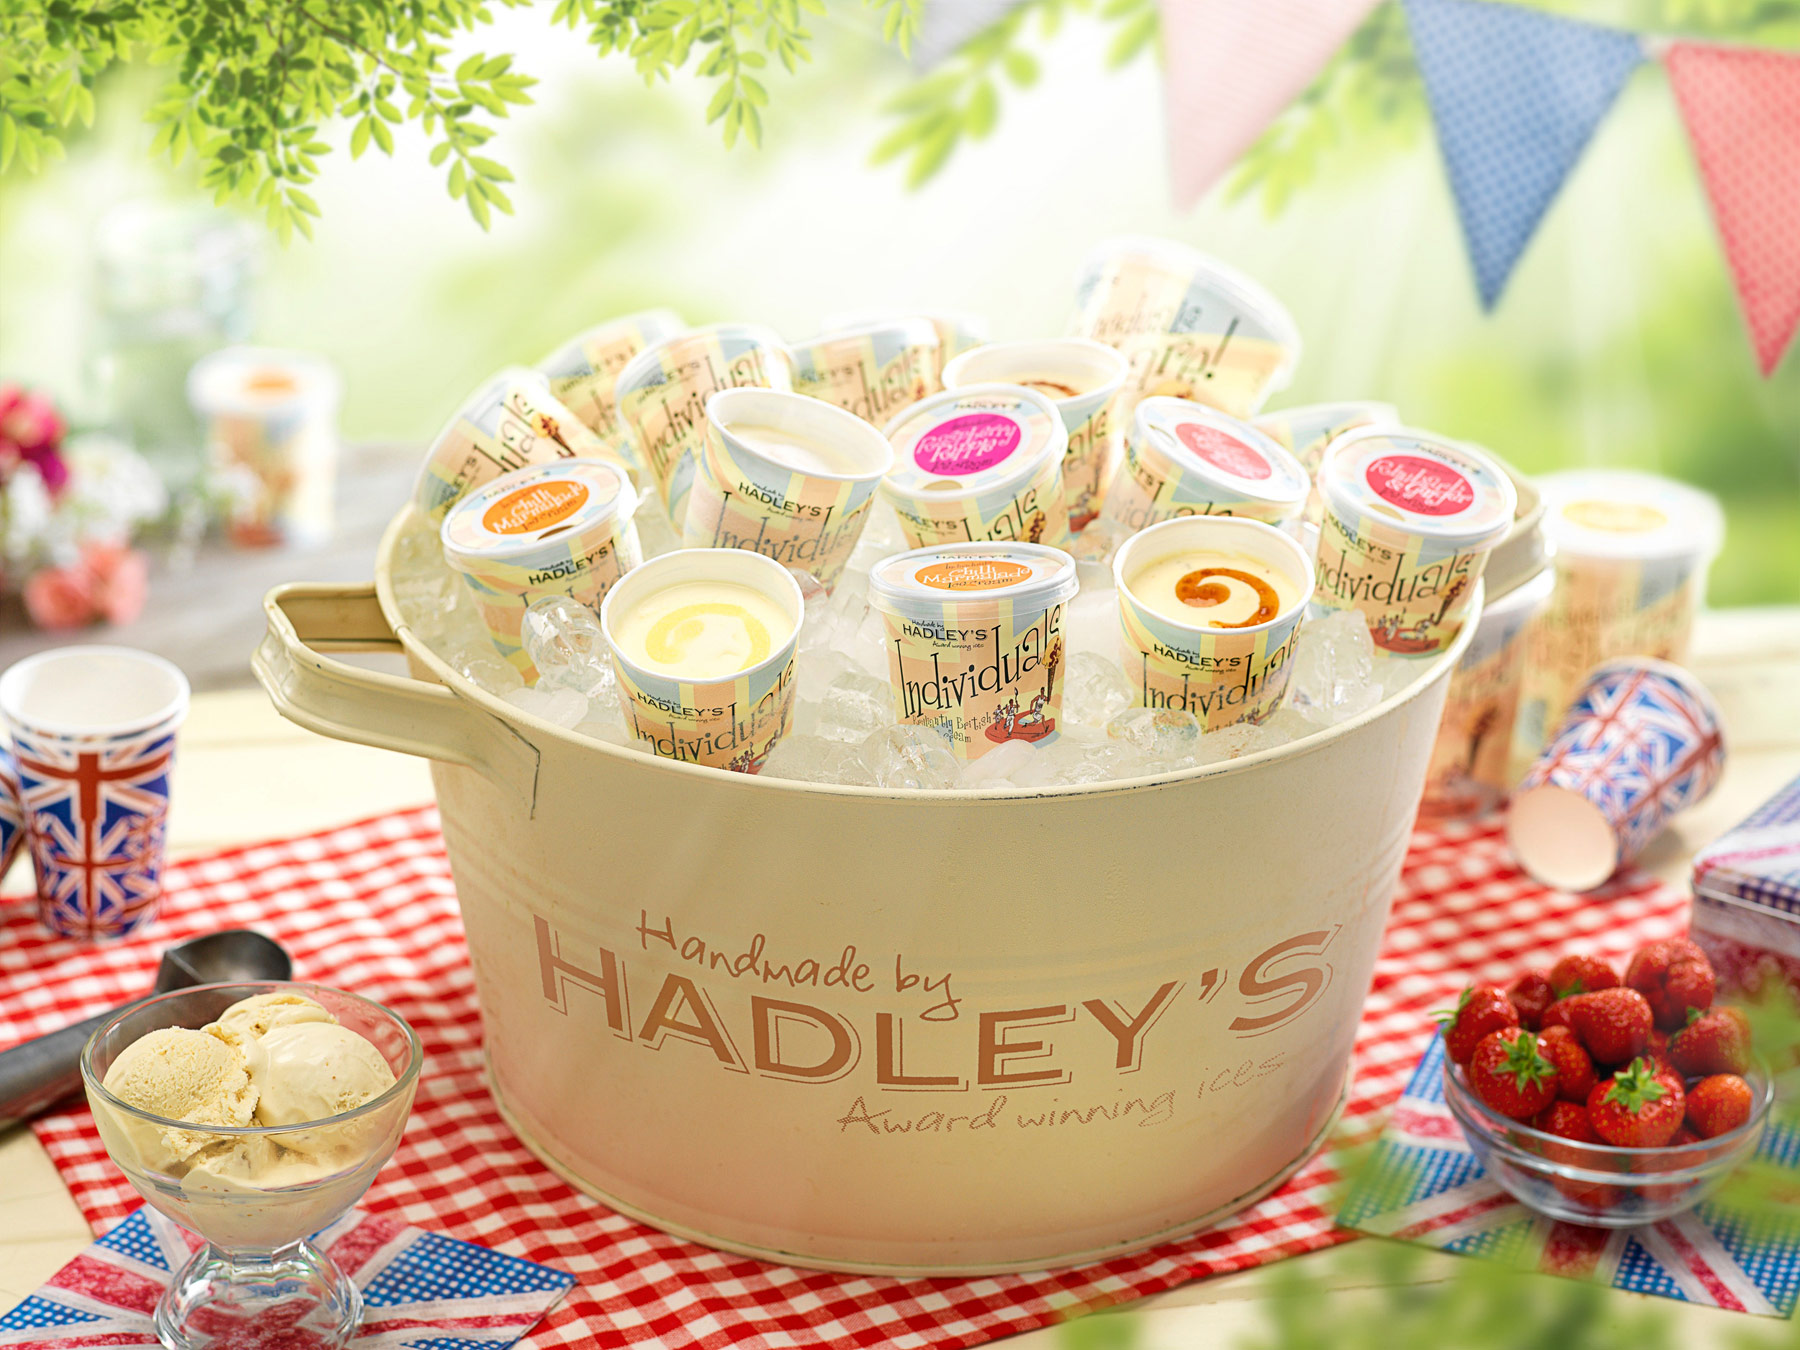 A large tub of Hadley's ice creams on a picnic table